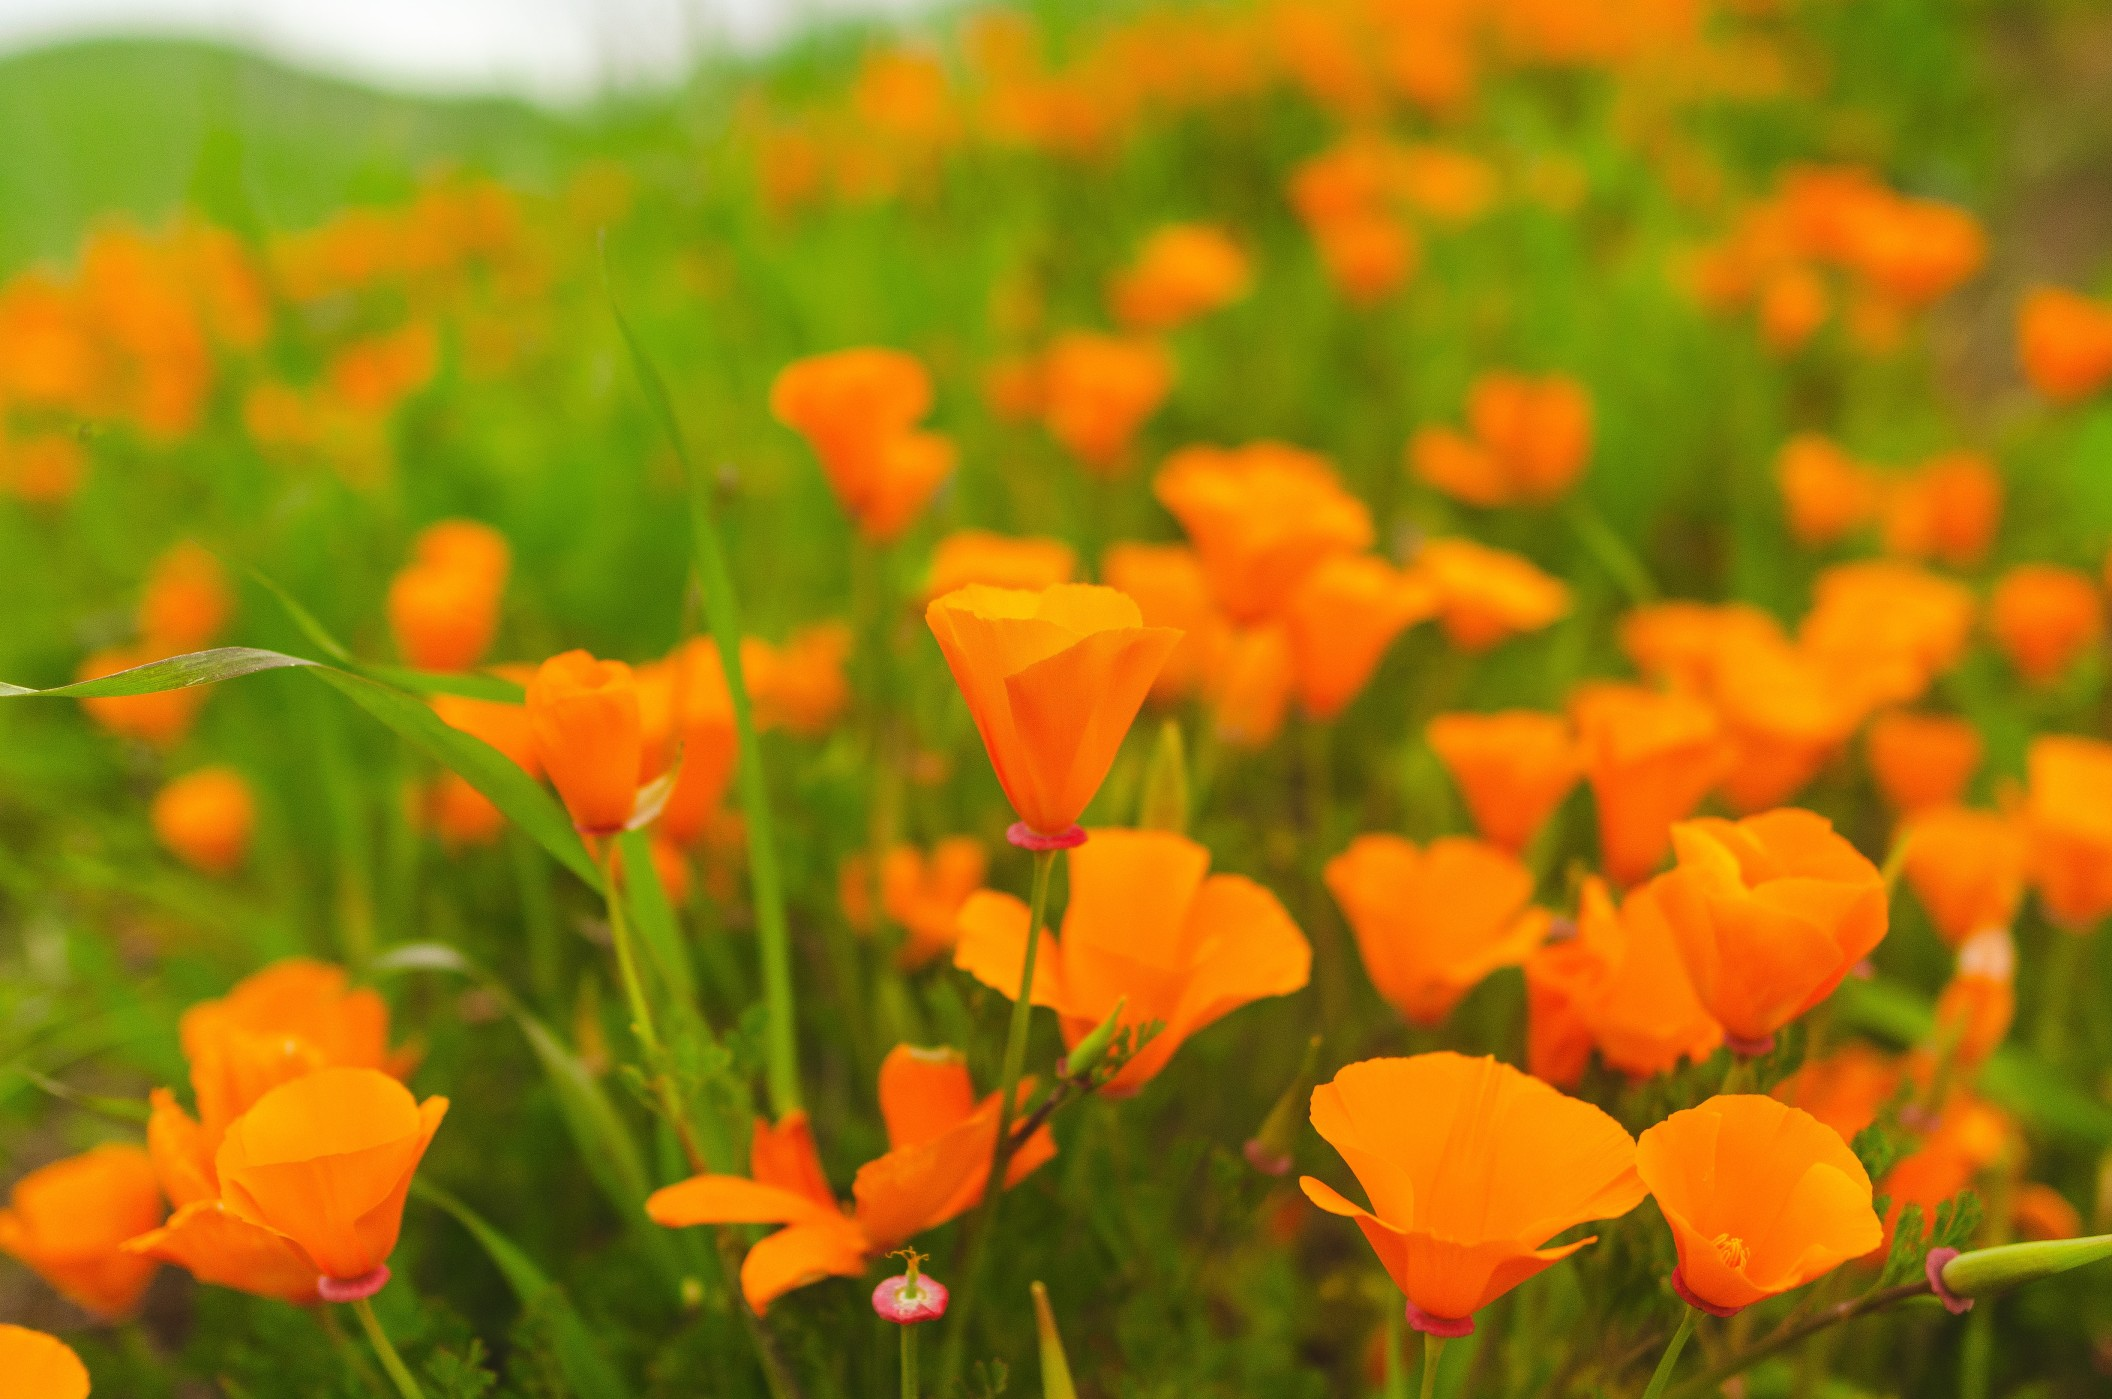 natural-background-of-a-bright-field-of-colorful-orange-california-poppies-in-springtime_t20_OzRBBg